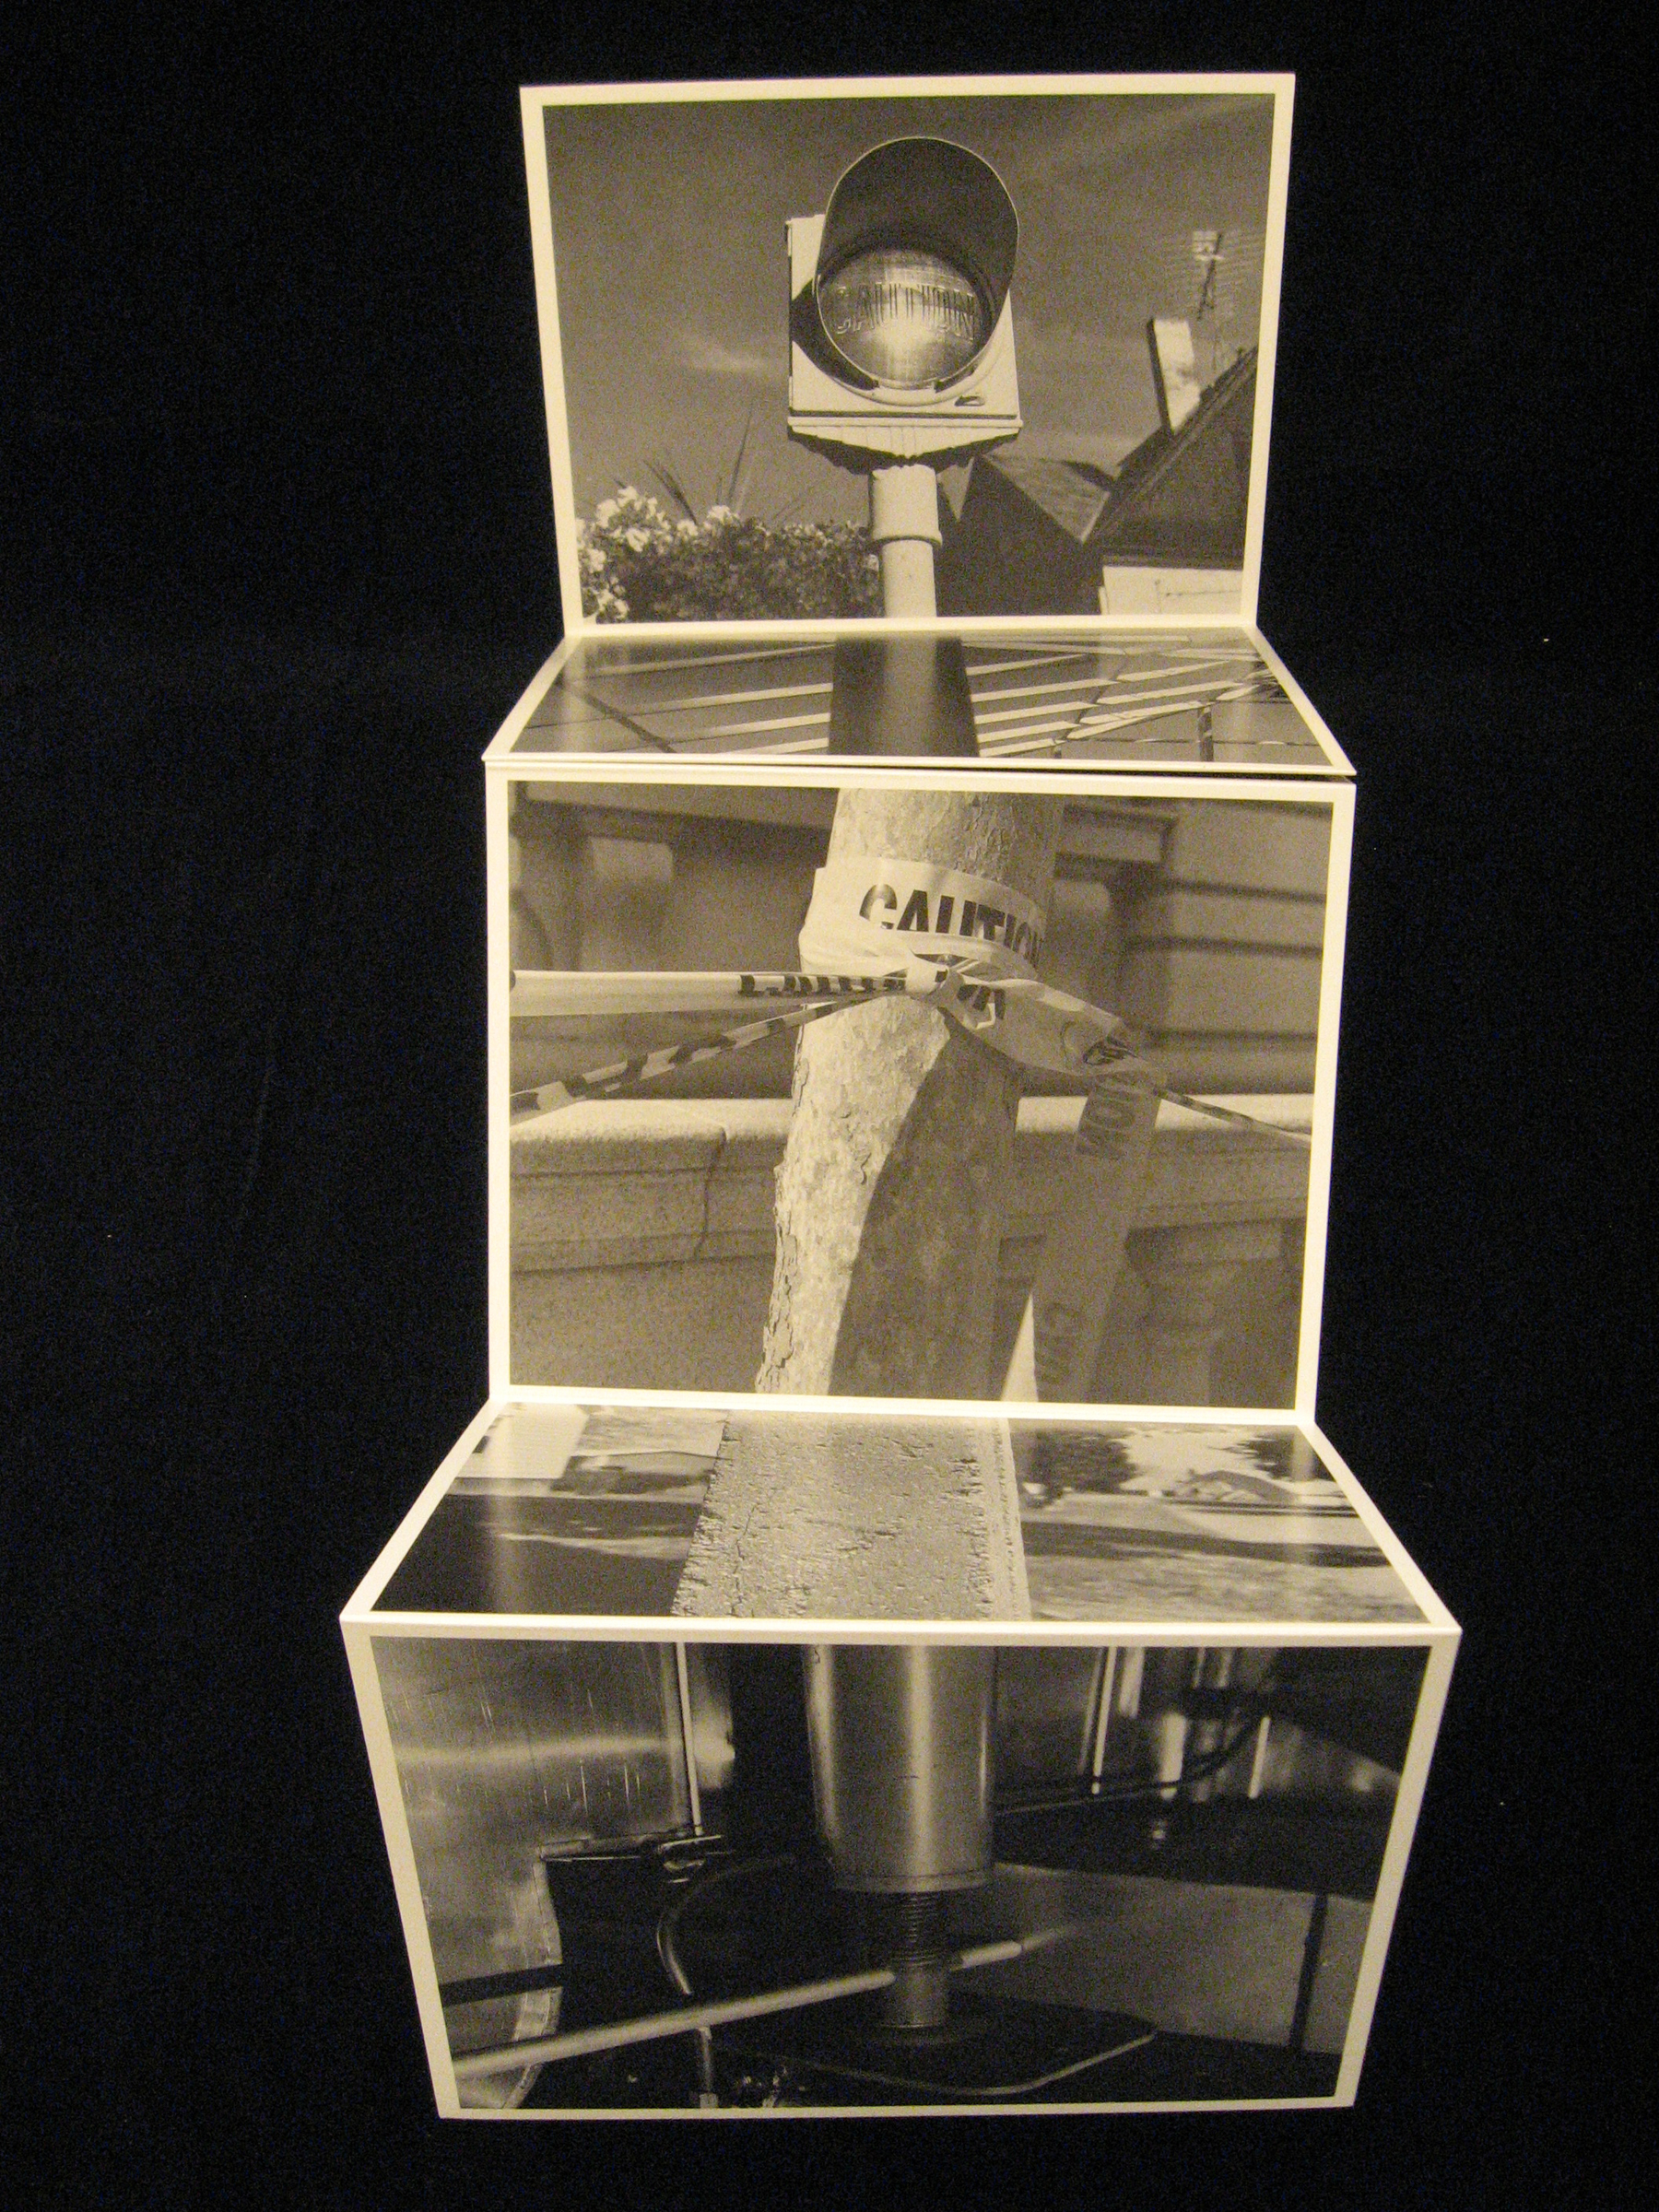 Open accordion fold book with black-and-white photos.